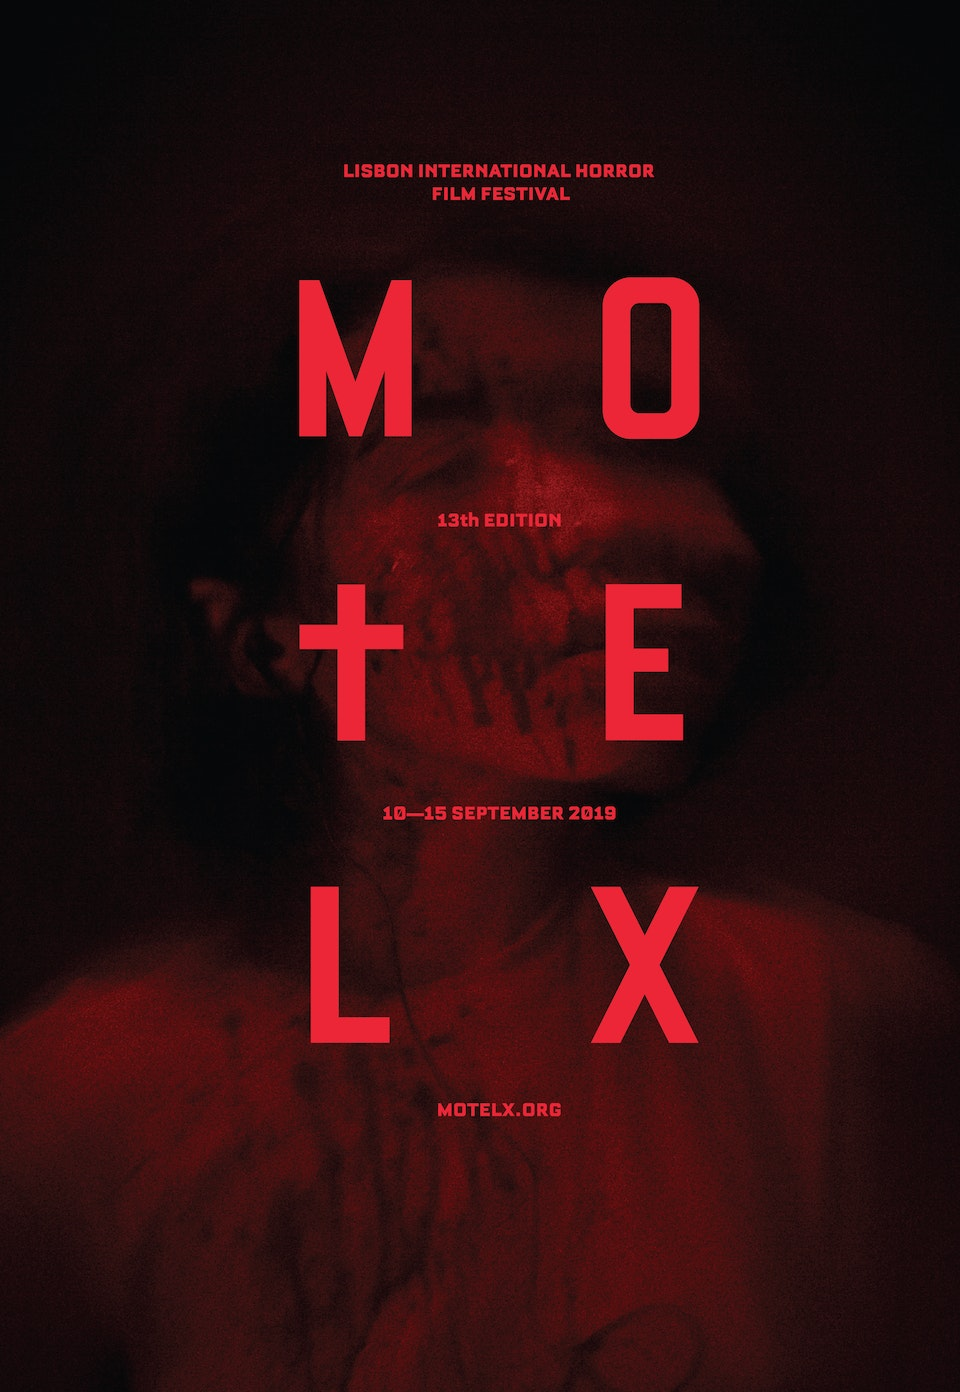 PLAYGROUND. Full Service Production Co. - MOTELX 2019